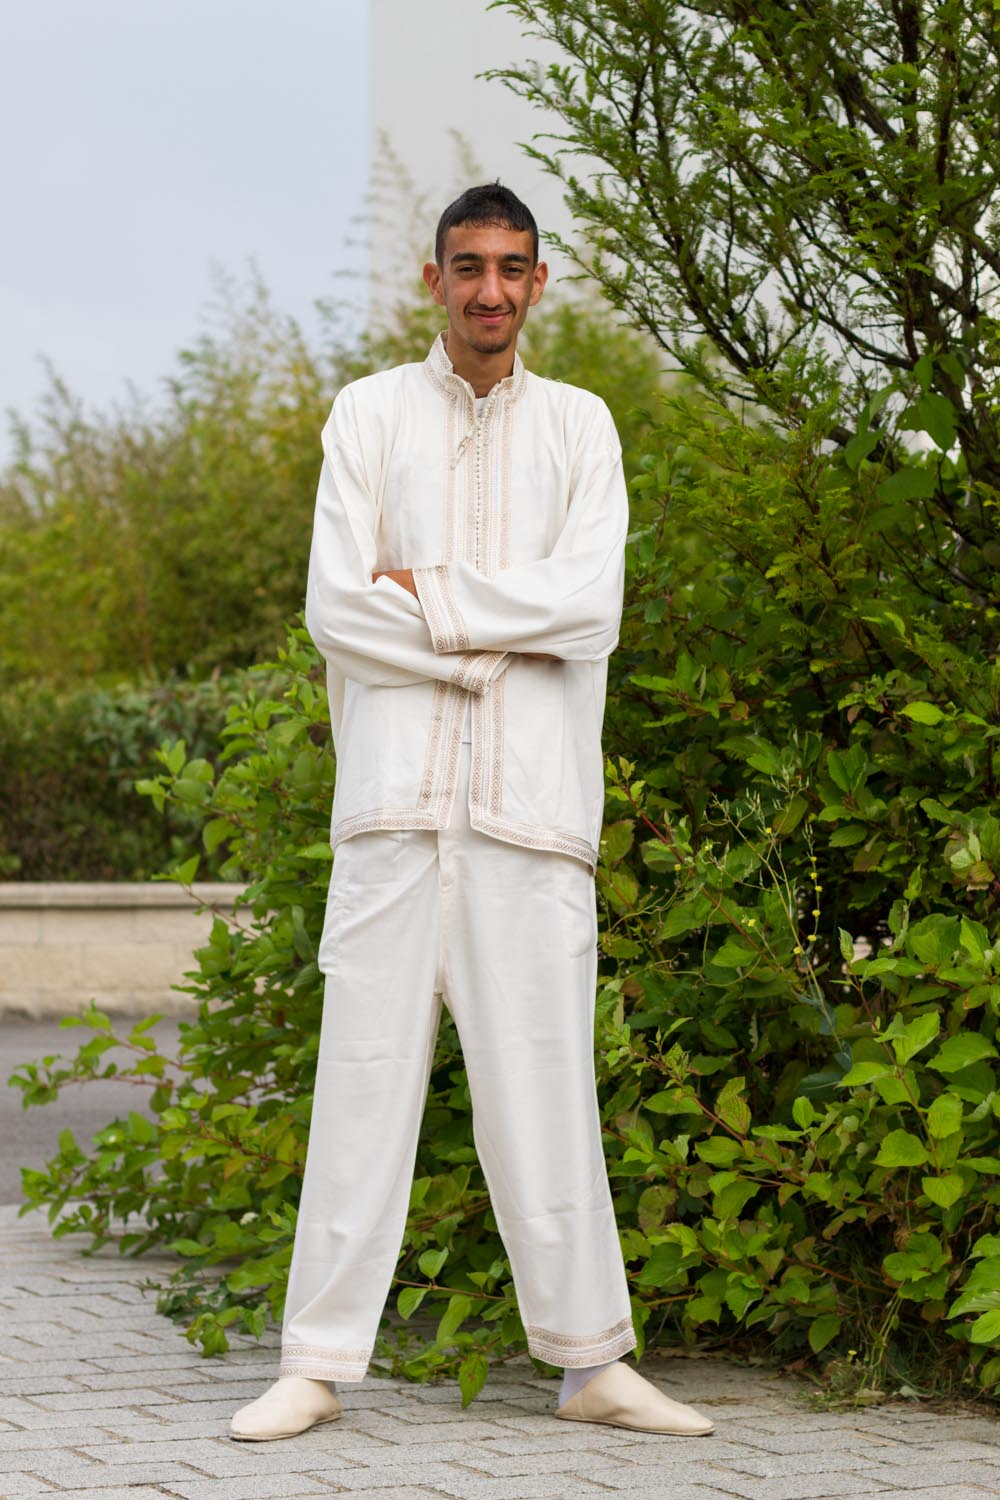 Pour le ramadan, Moujib portait une tenue traditionnelle Marocaine. For the Ramadan, Moujib was wearing a traditional clothe from Marocco.